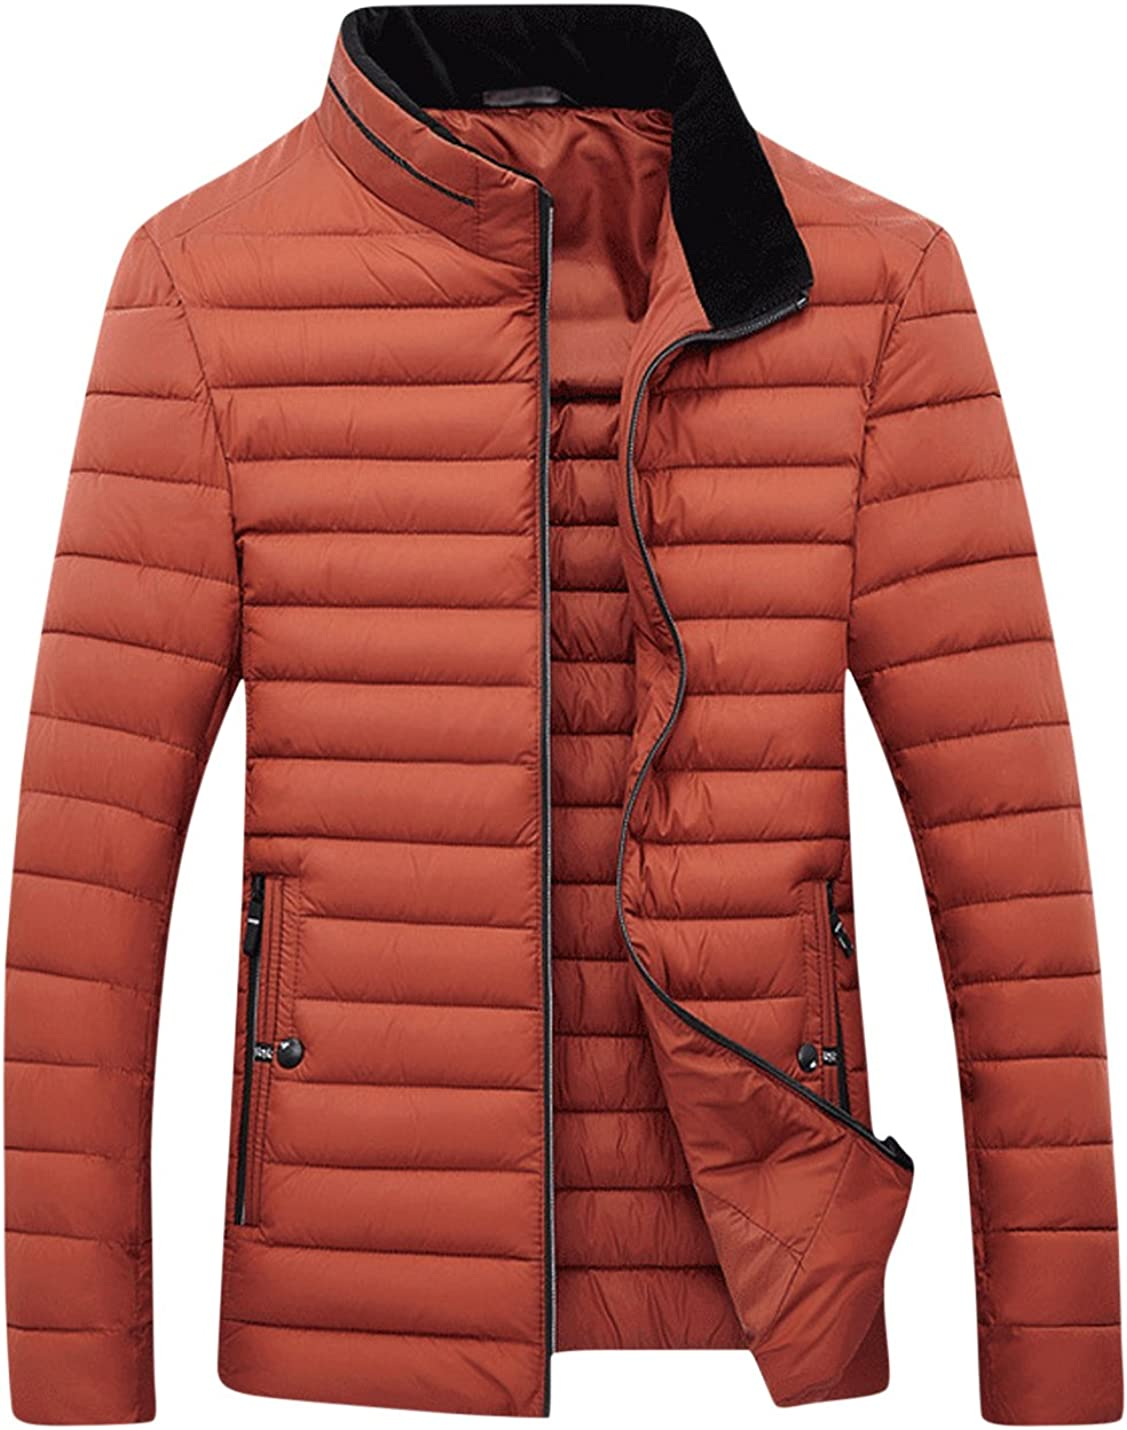 Springrain Men's Stand Collar Thicken Quilted Cotton-Padded Jacket Coats